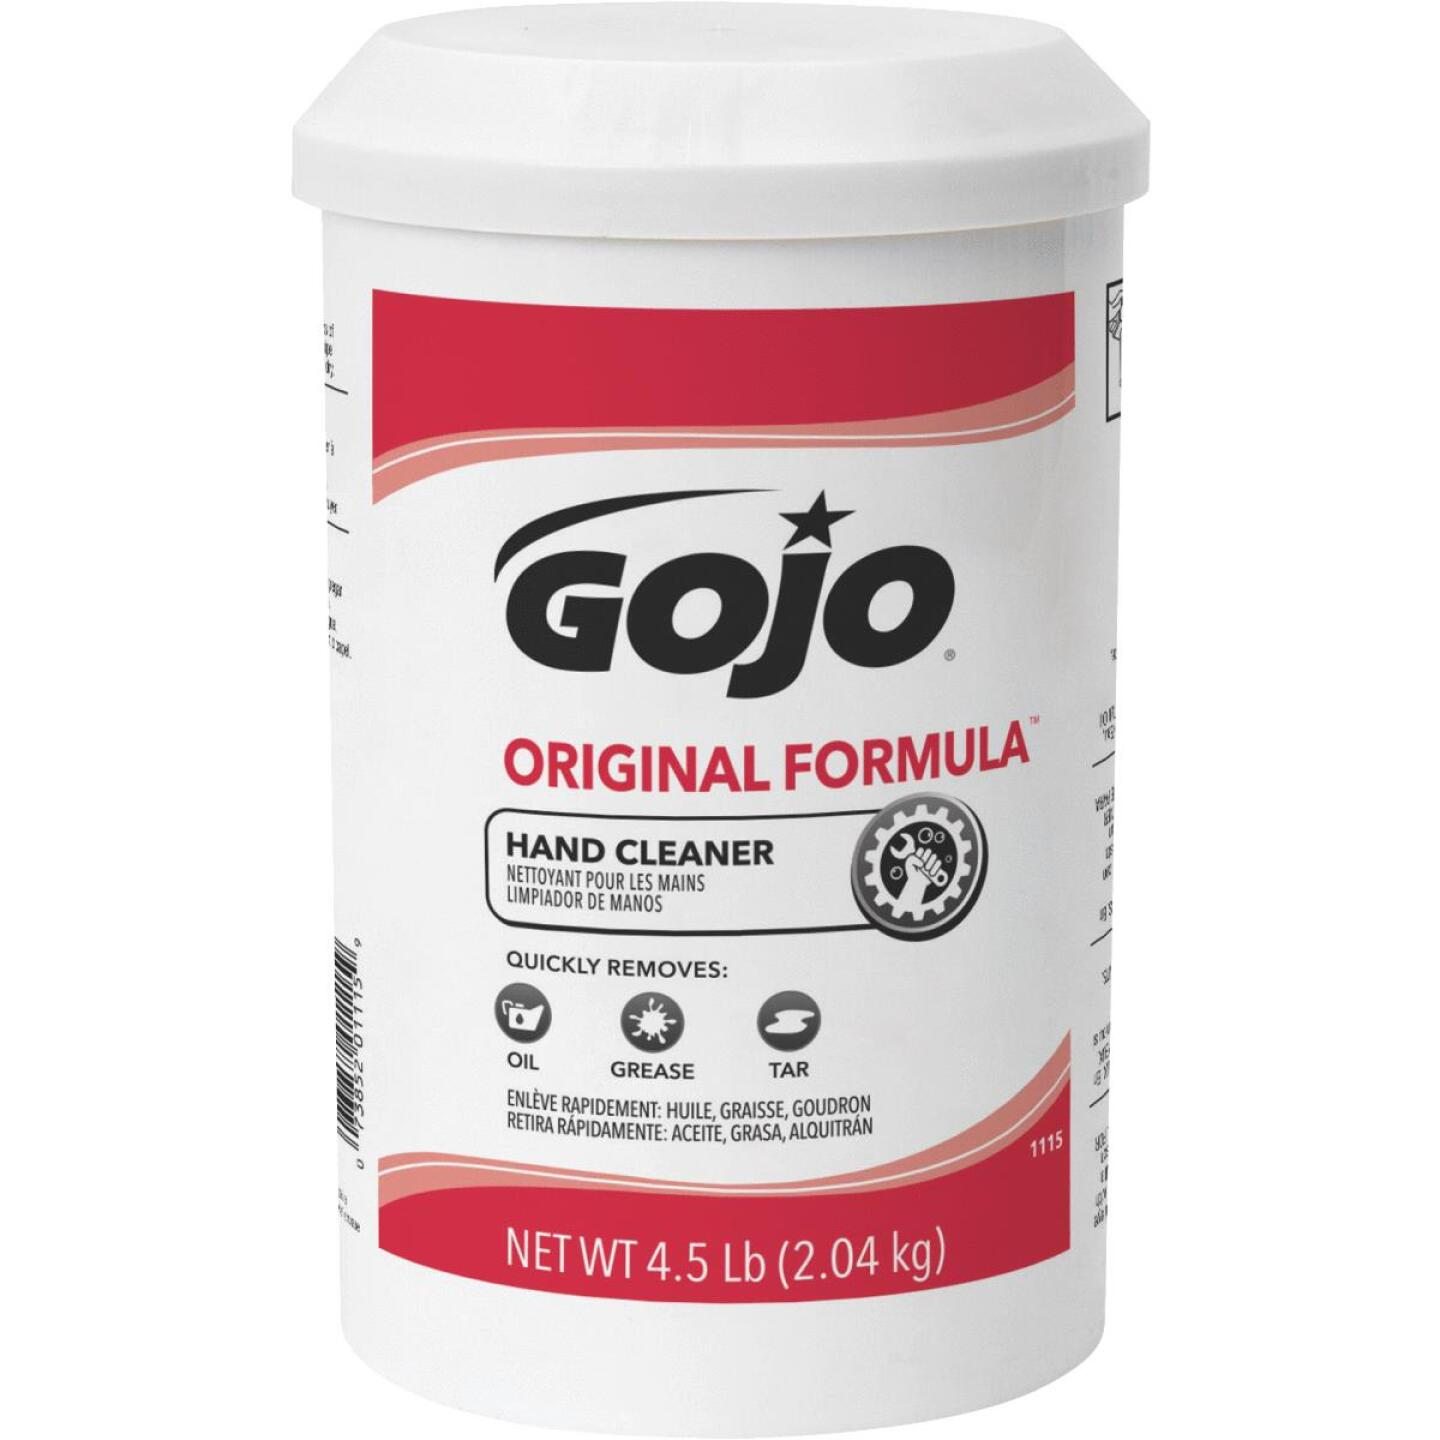 GOJO Smooth 4.5 lb Hand Cleaner Image 1